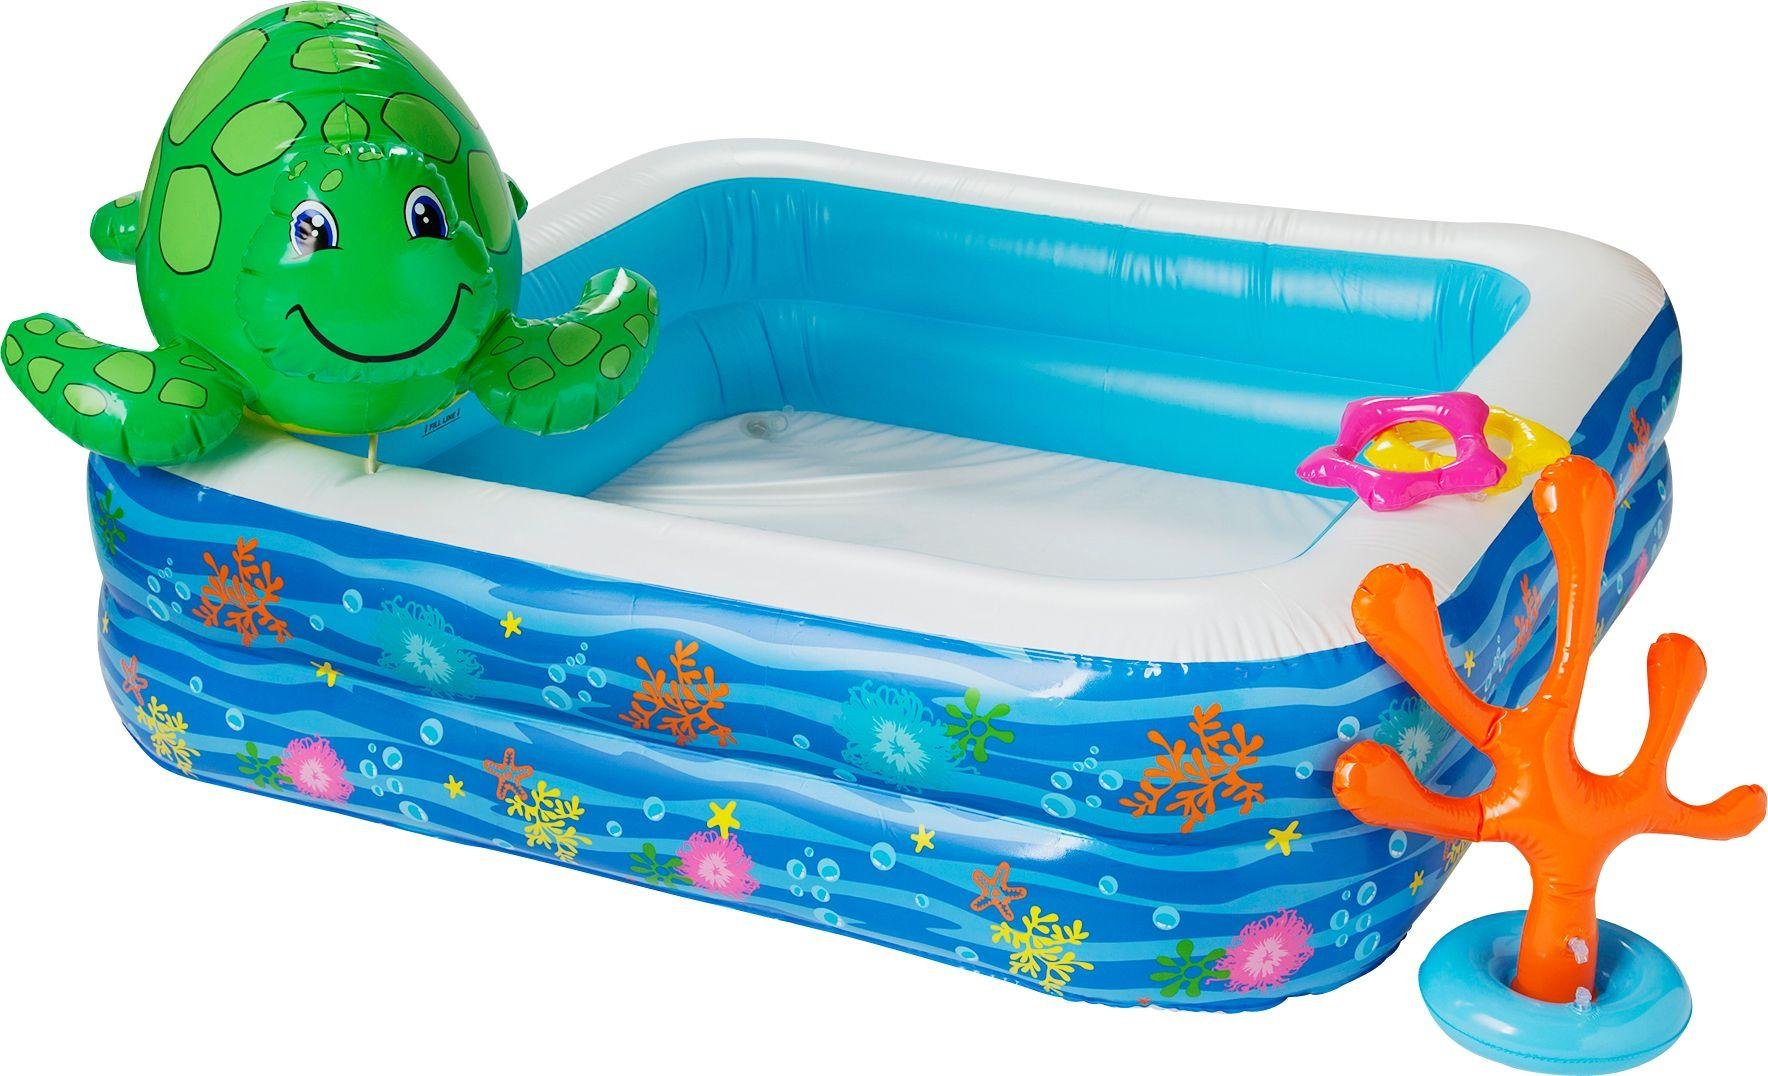 Chad Valley Pool Set with Spray Turtle - 4.8ft - 302 Litres